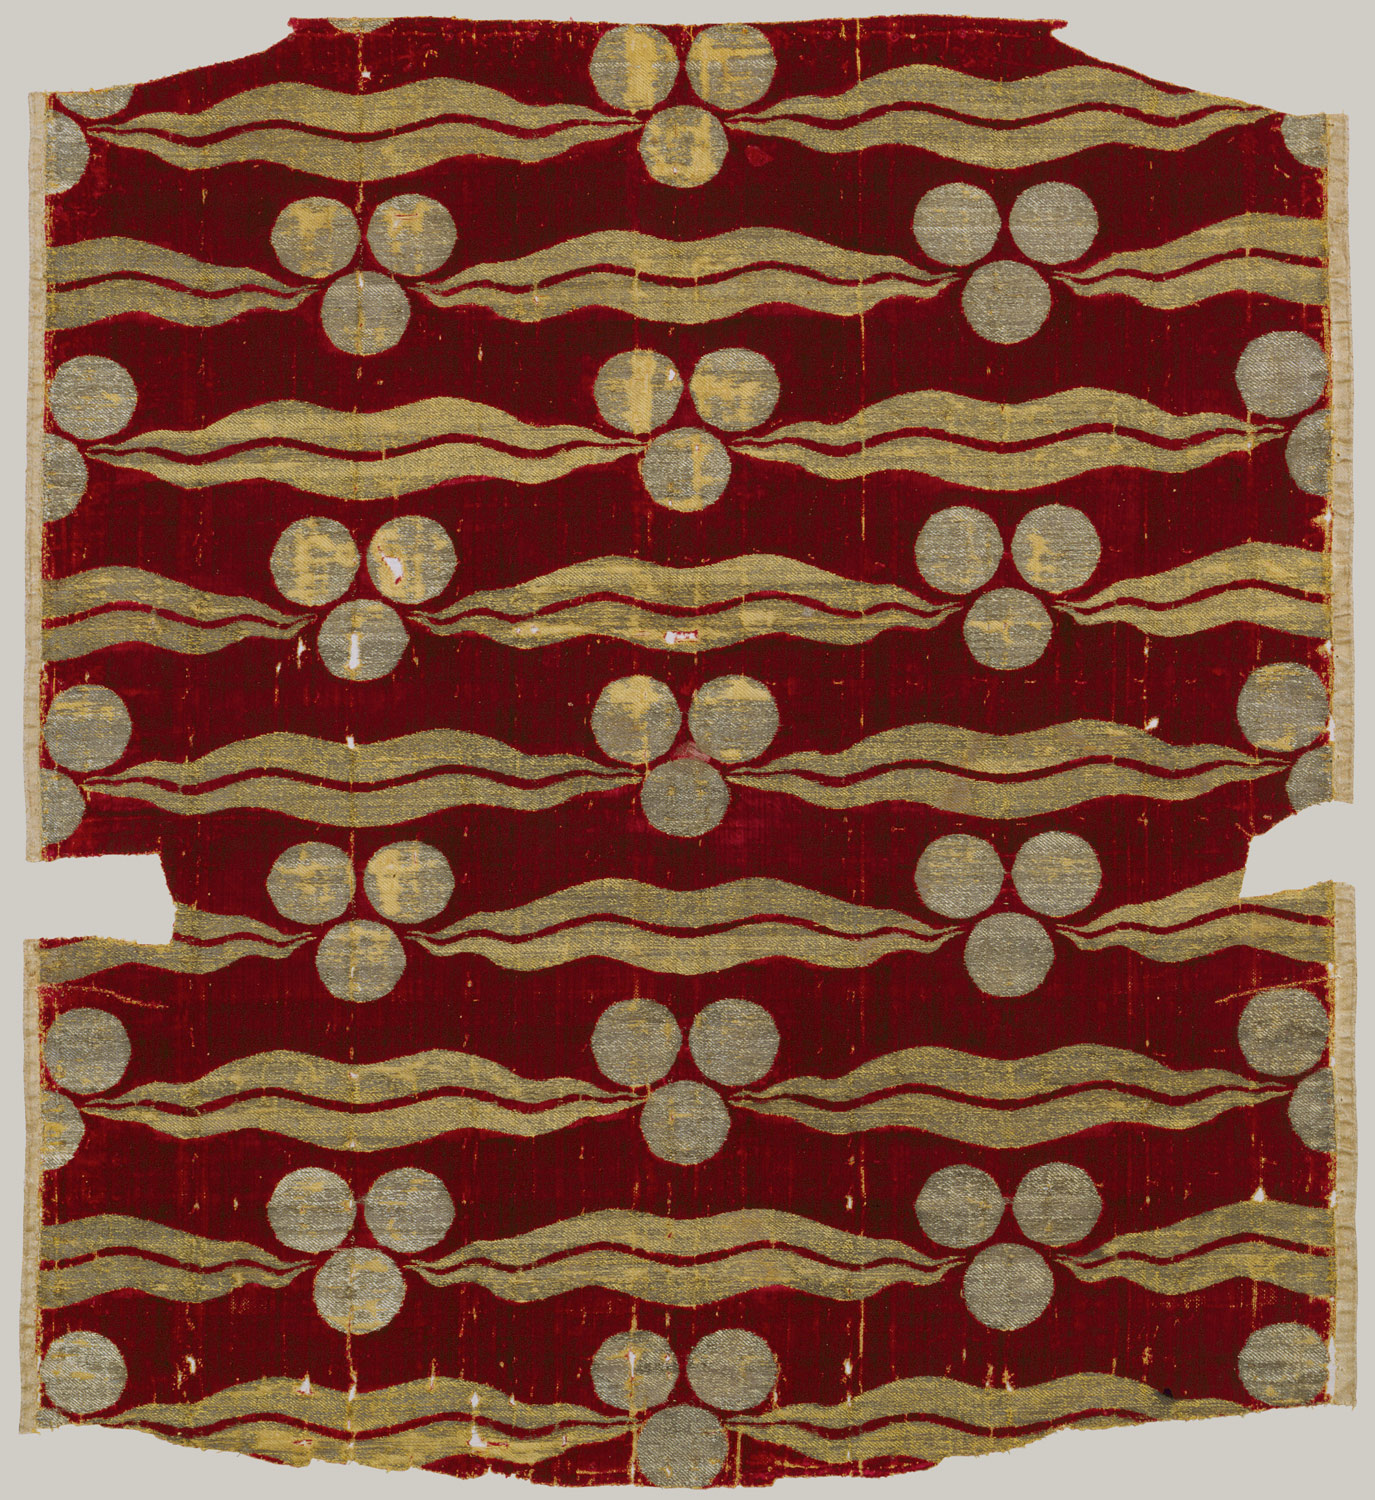 Fragmentary Silk Velvet with Repeating Tiger-stripe and Chintamani Design